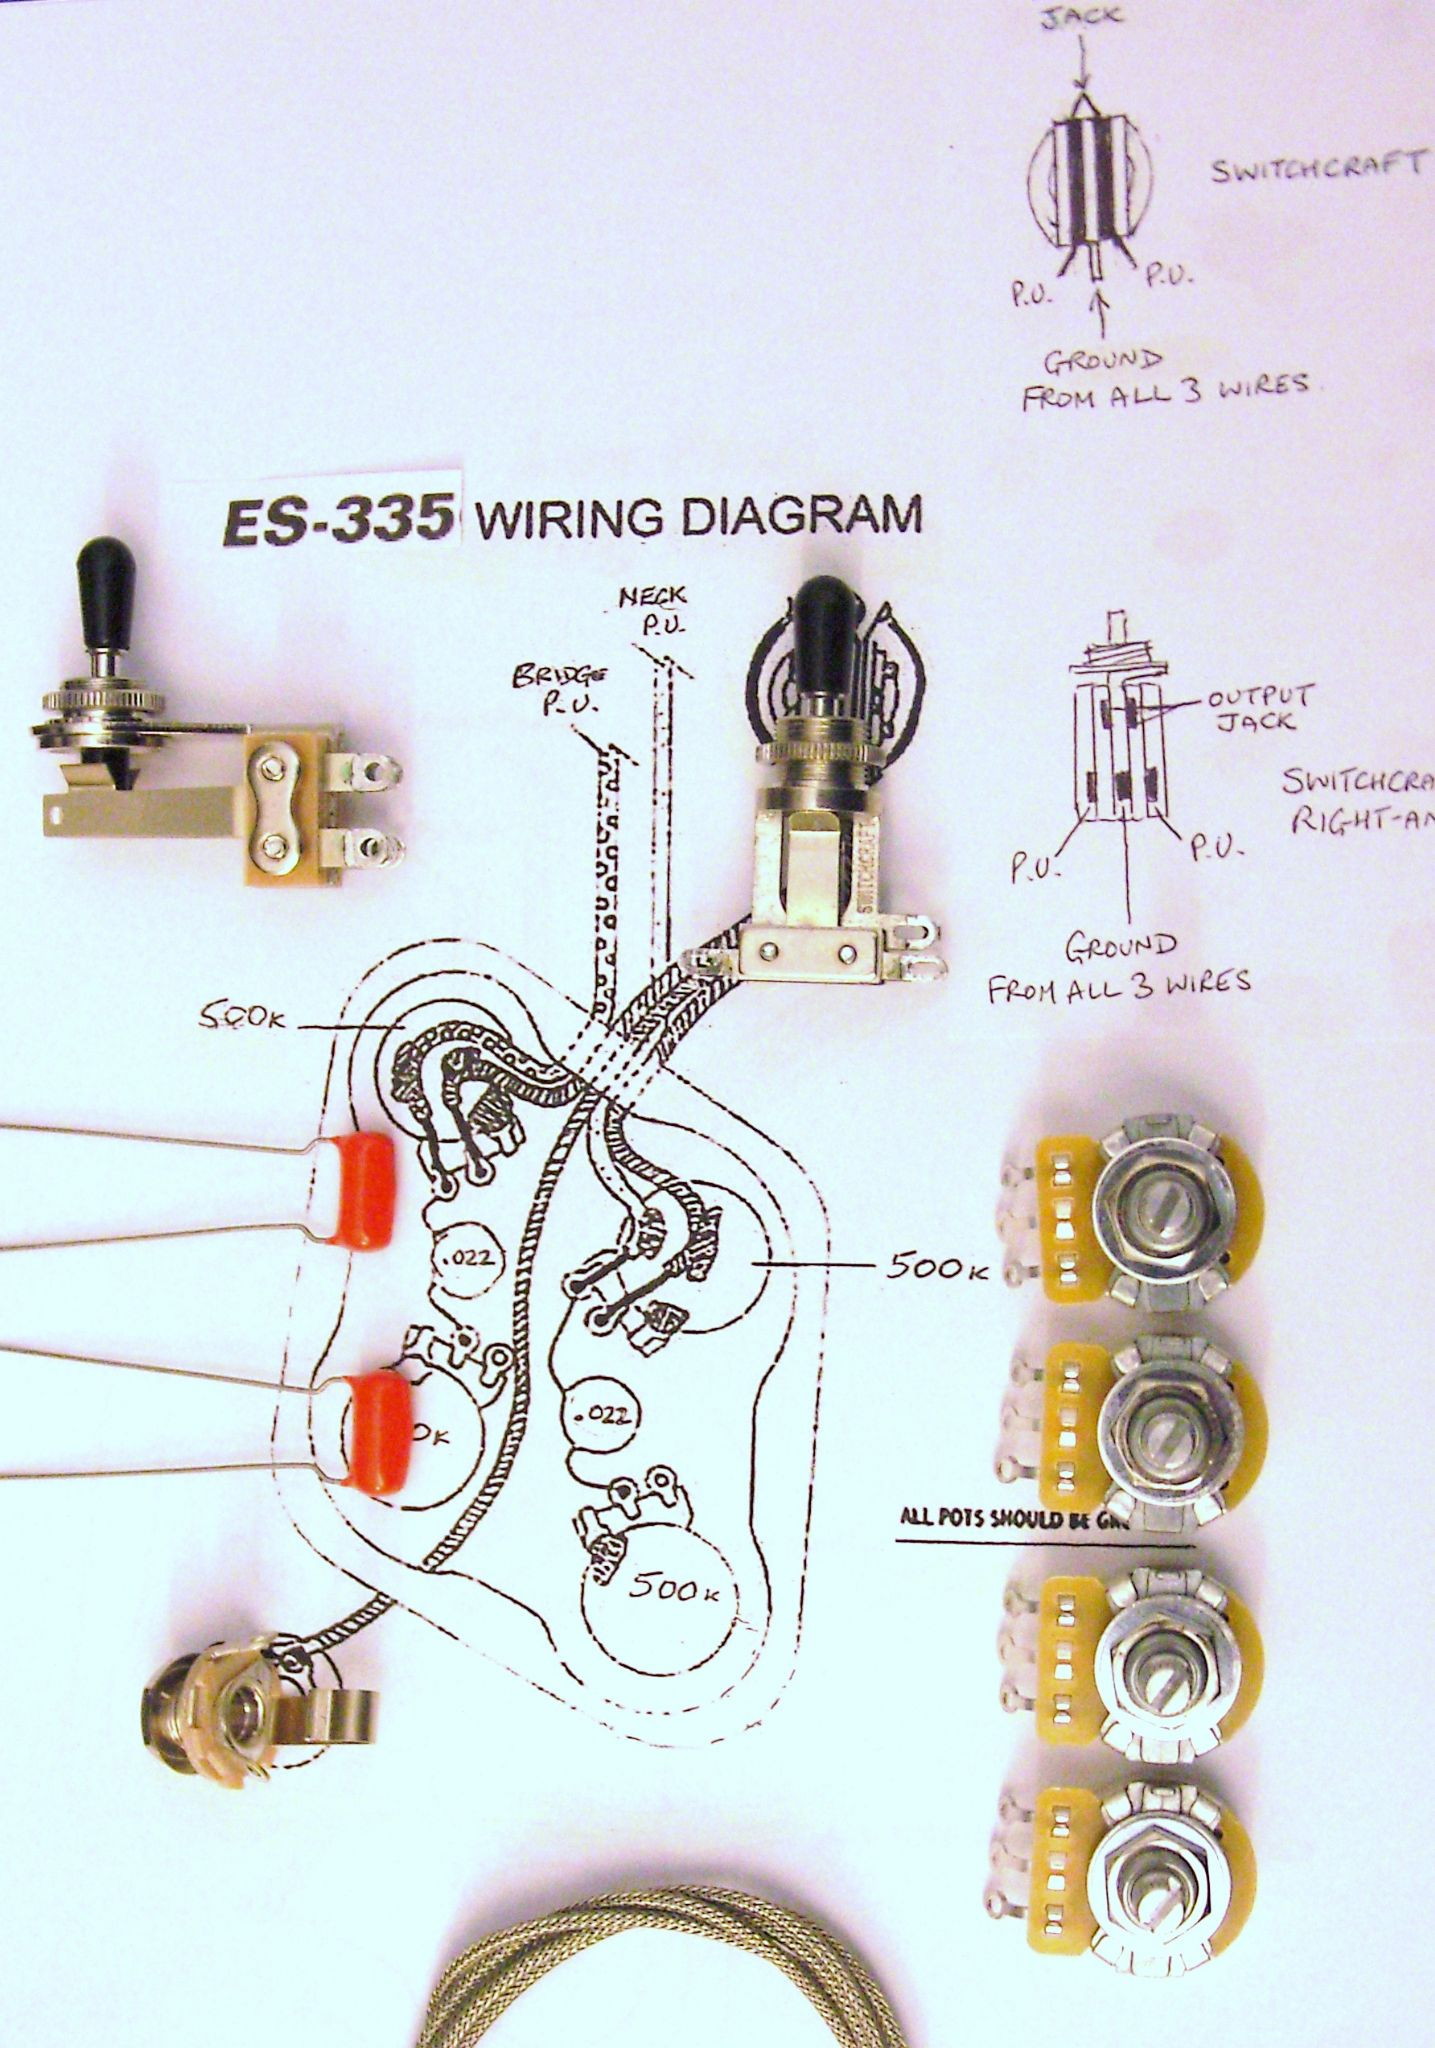 Wiring Kit For With Right Angle Switchcraft Toggle Switch P further Np Un Jan moreover Range Switch as well D Help Wiring Attic Fan Motor further Motion Pro Enhanced Handlebar Mount Switch Instructions. on 4 way switch wiring diagram